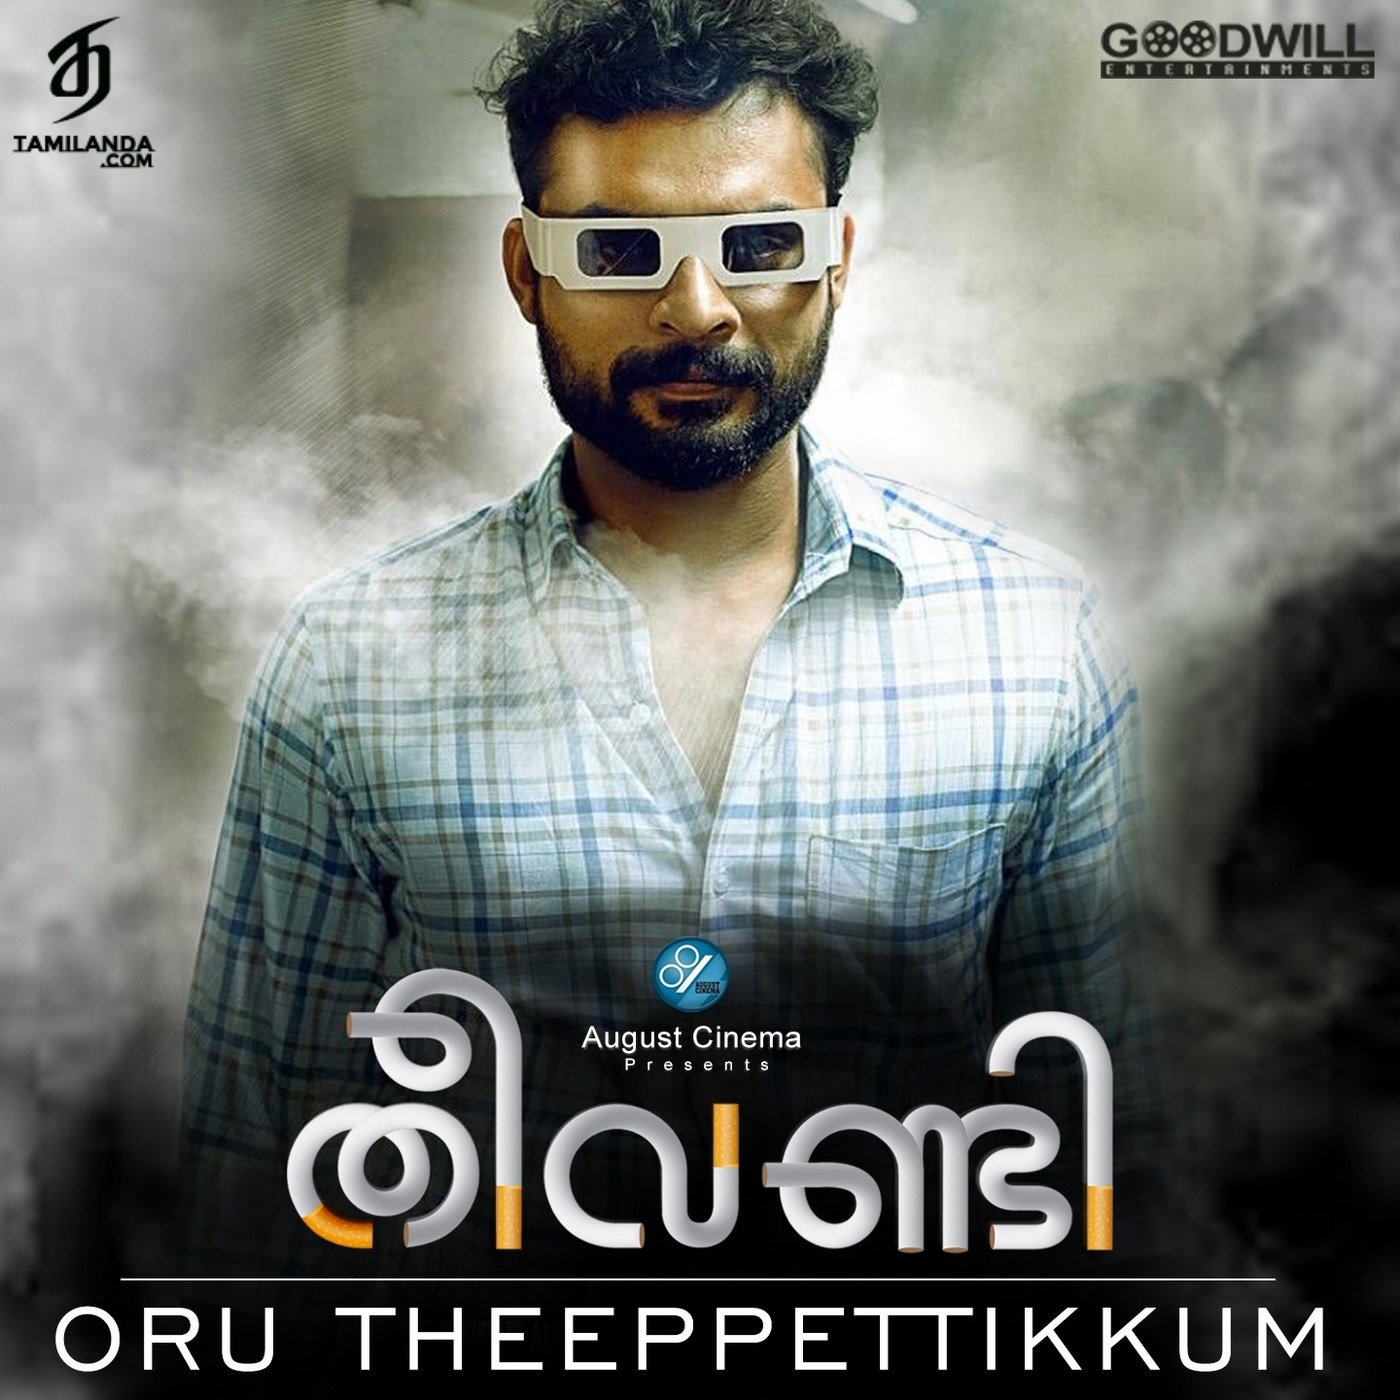 Oru Theepettikkum Venda (From Theevandi) (Single) FLAC Song